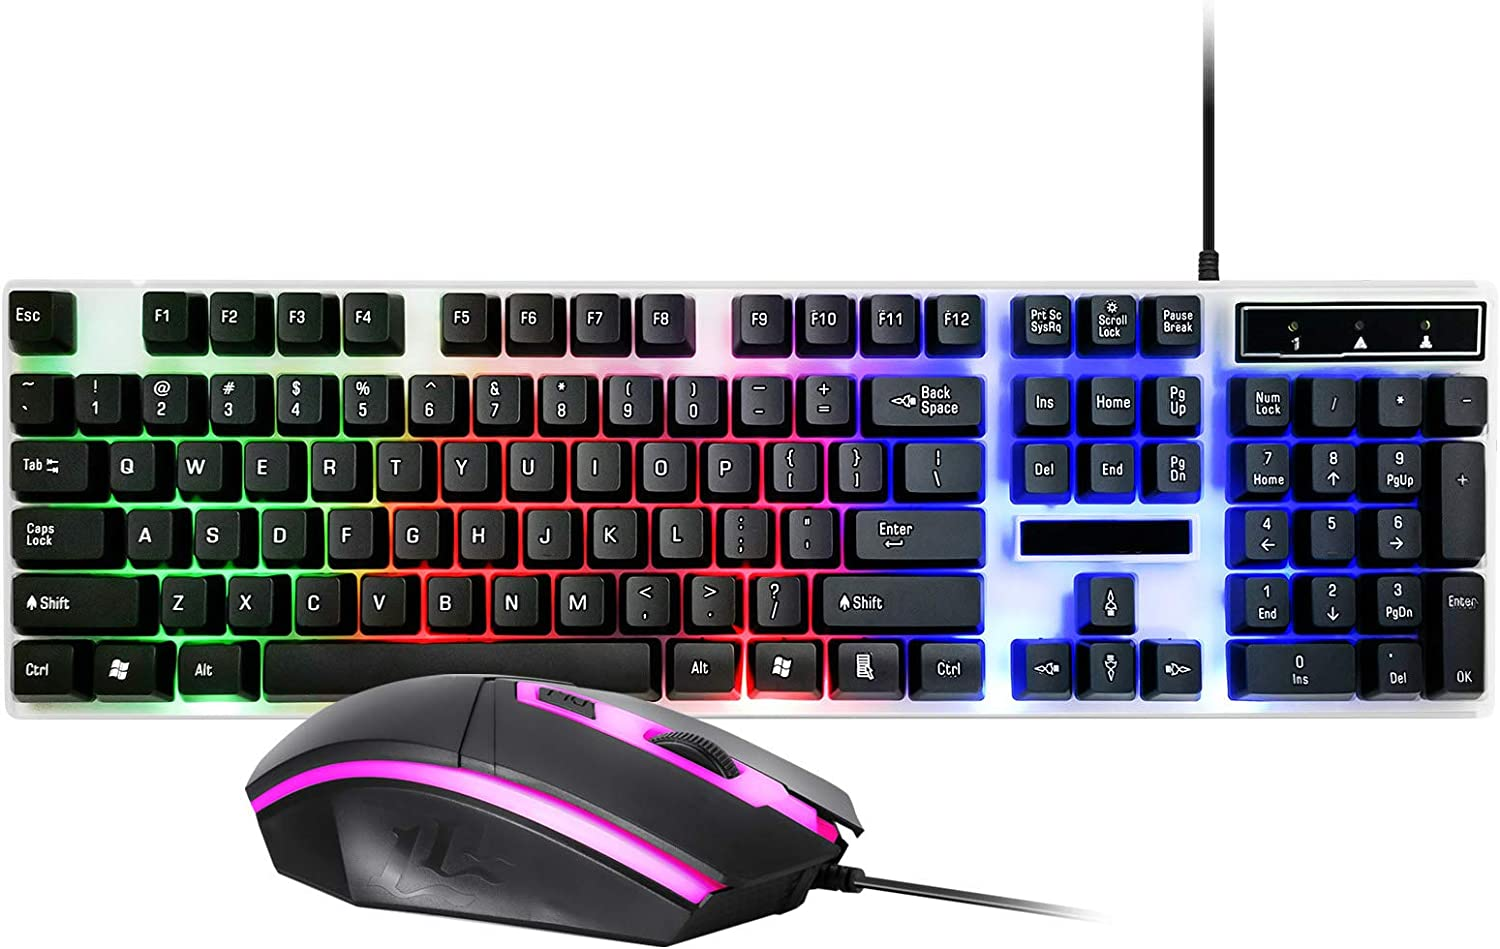 SOONHUA RGB Gaming Keyboard and Mouse Combo,104 Keys Backlit Computer Keyboard with Gaming Ergonomic Keyboard Mouse, USB Wired Set for PC Gamer Laptop Work